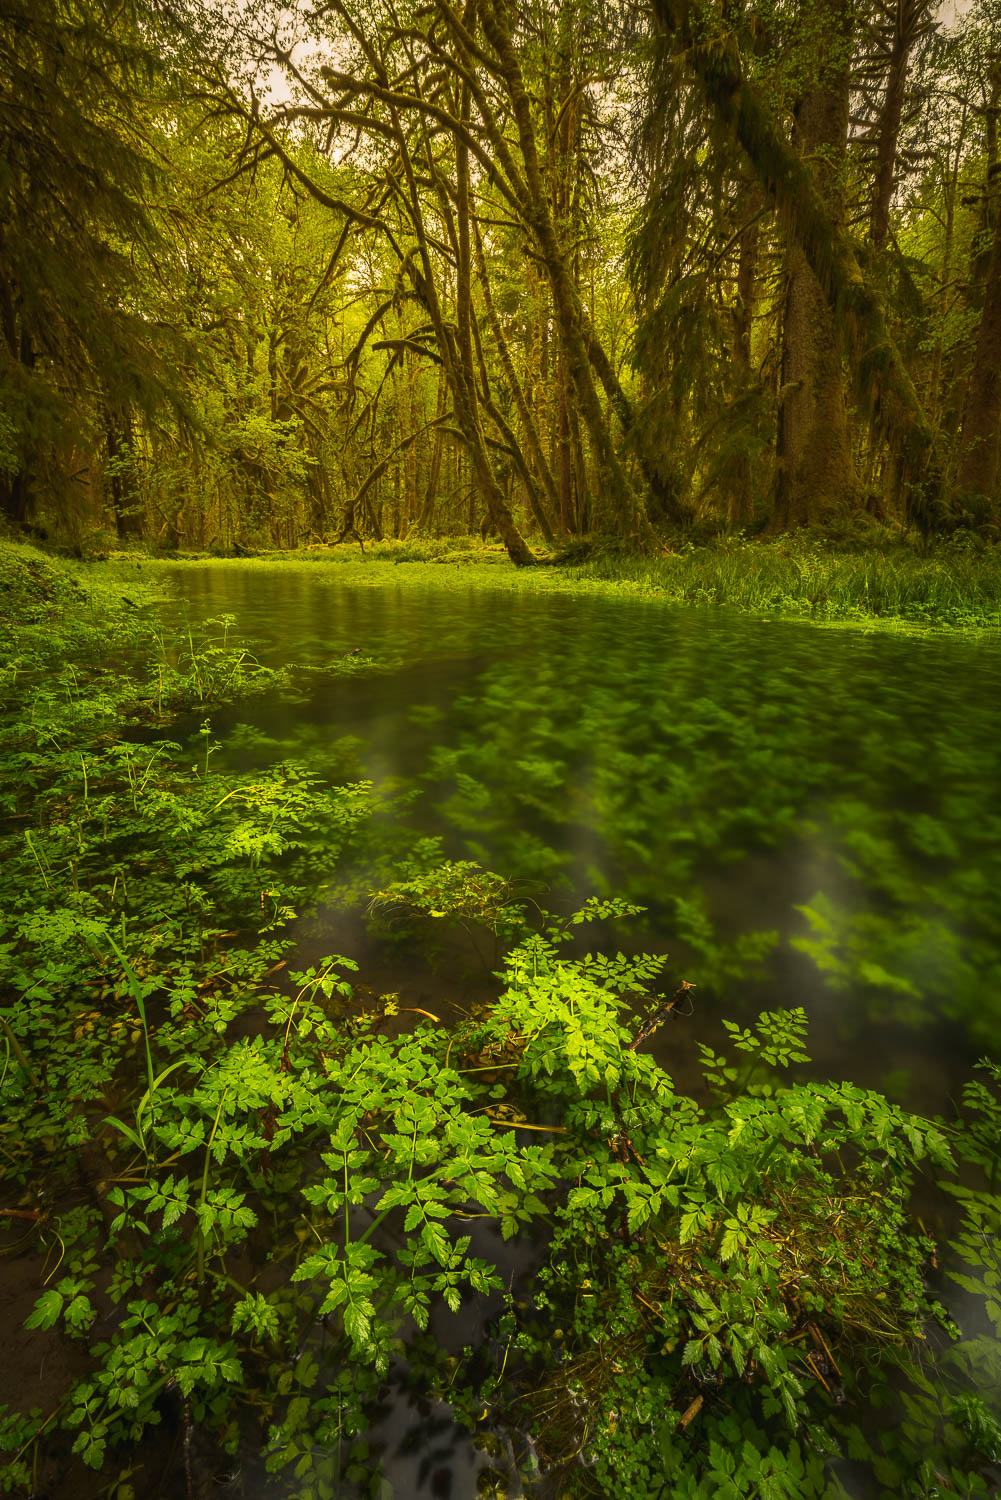 Green foliage and moss covered trees with water pool